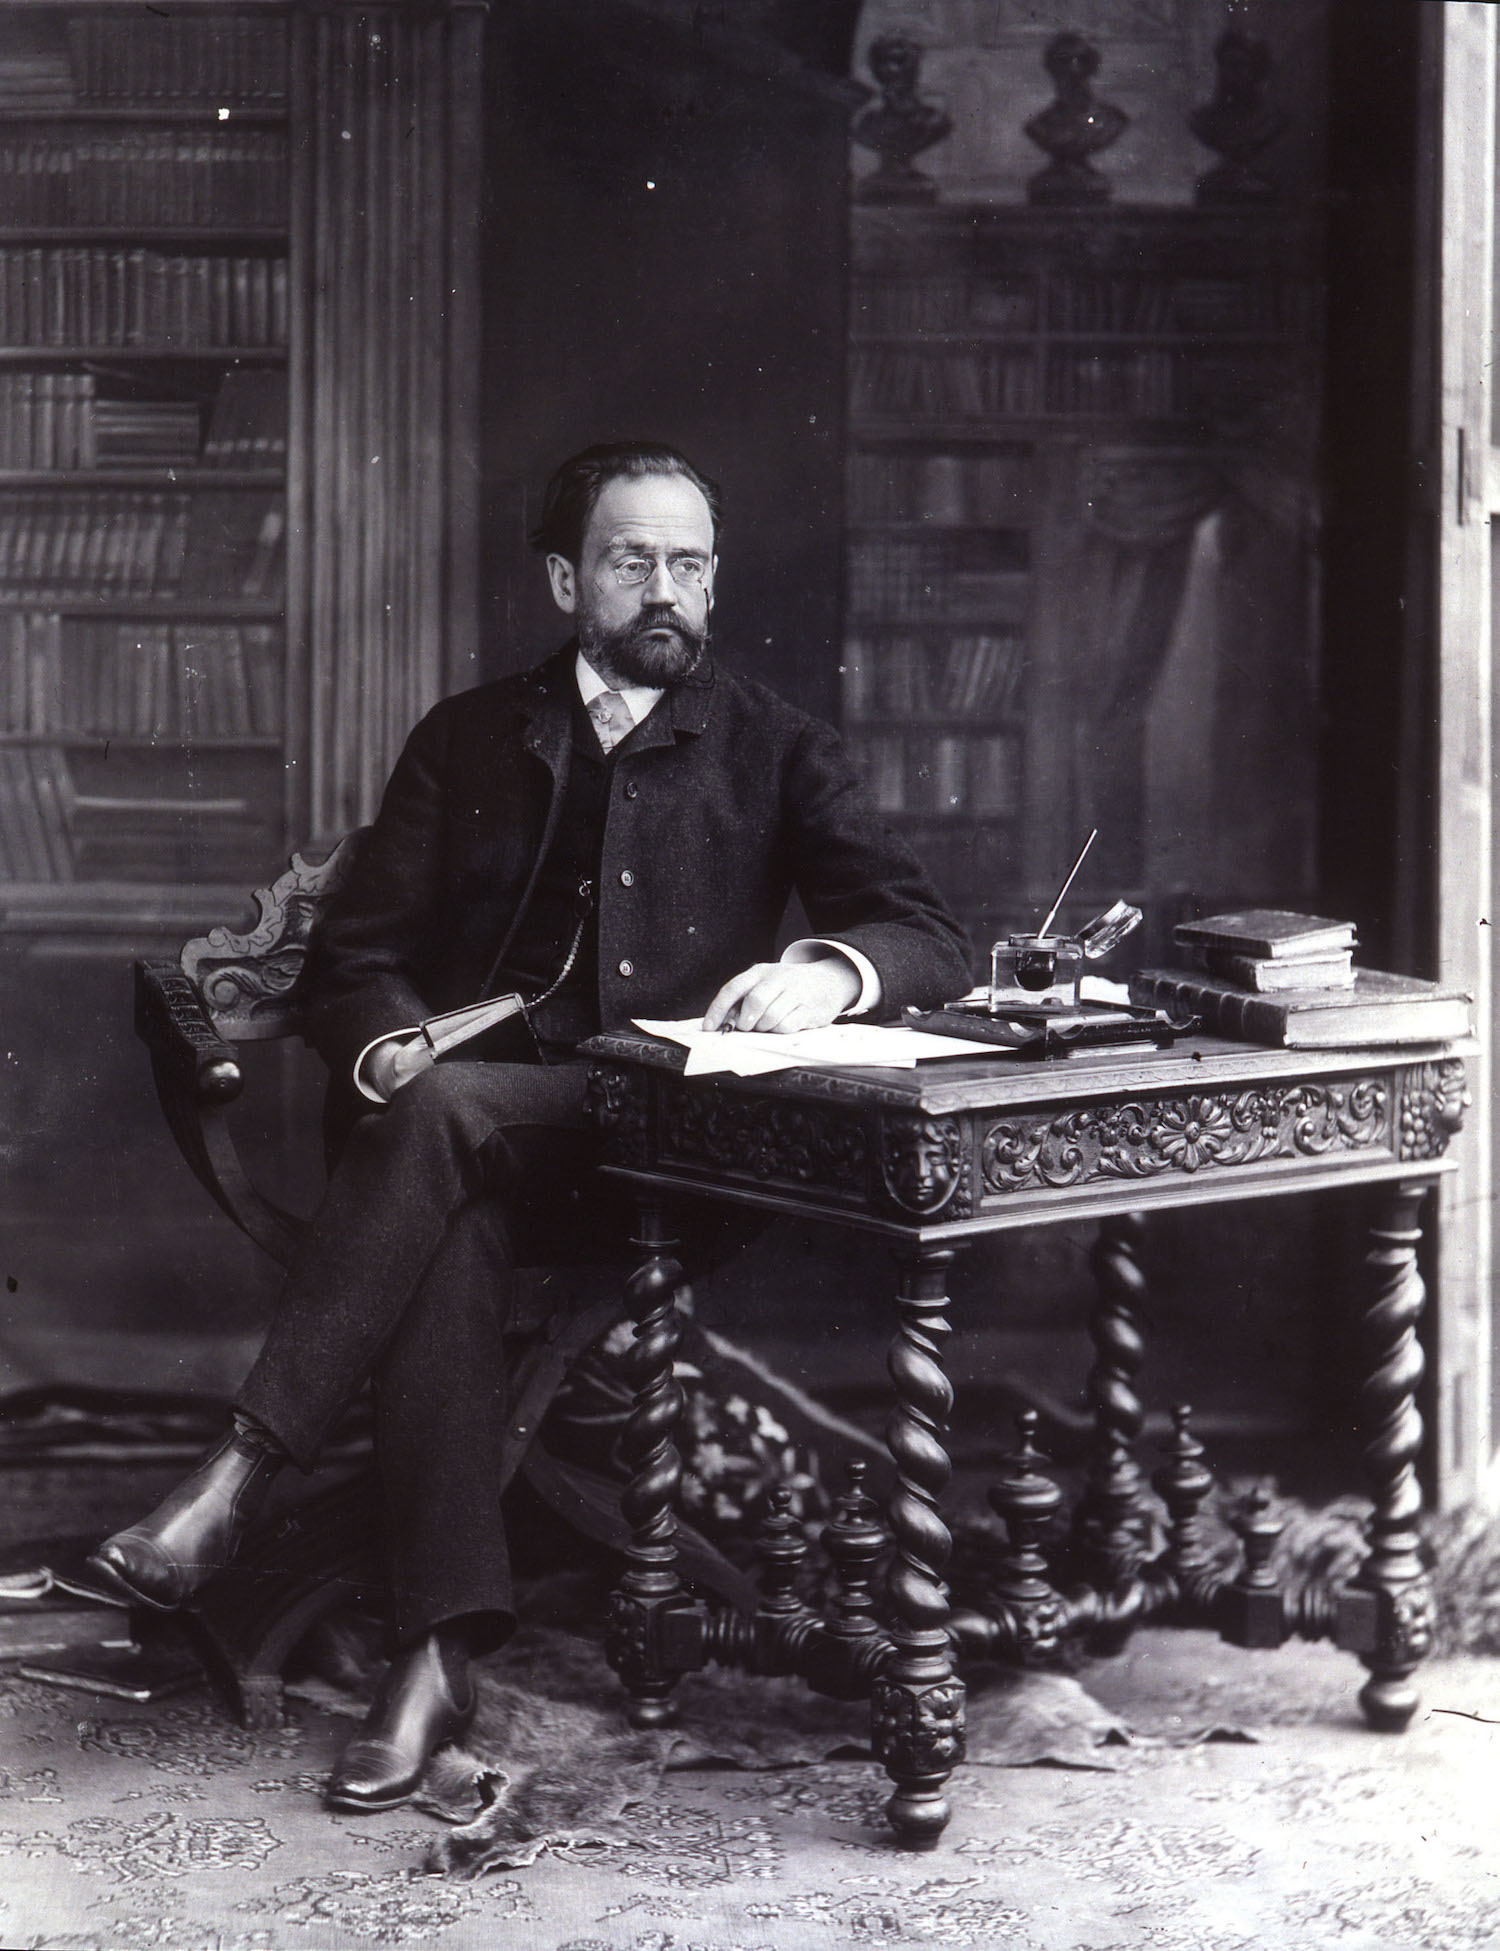 Emile ZOLA at his desk, photograph, c.1885 probably taken by Paul Nadar, son of Felix (Nadar)